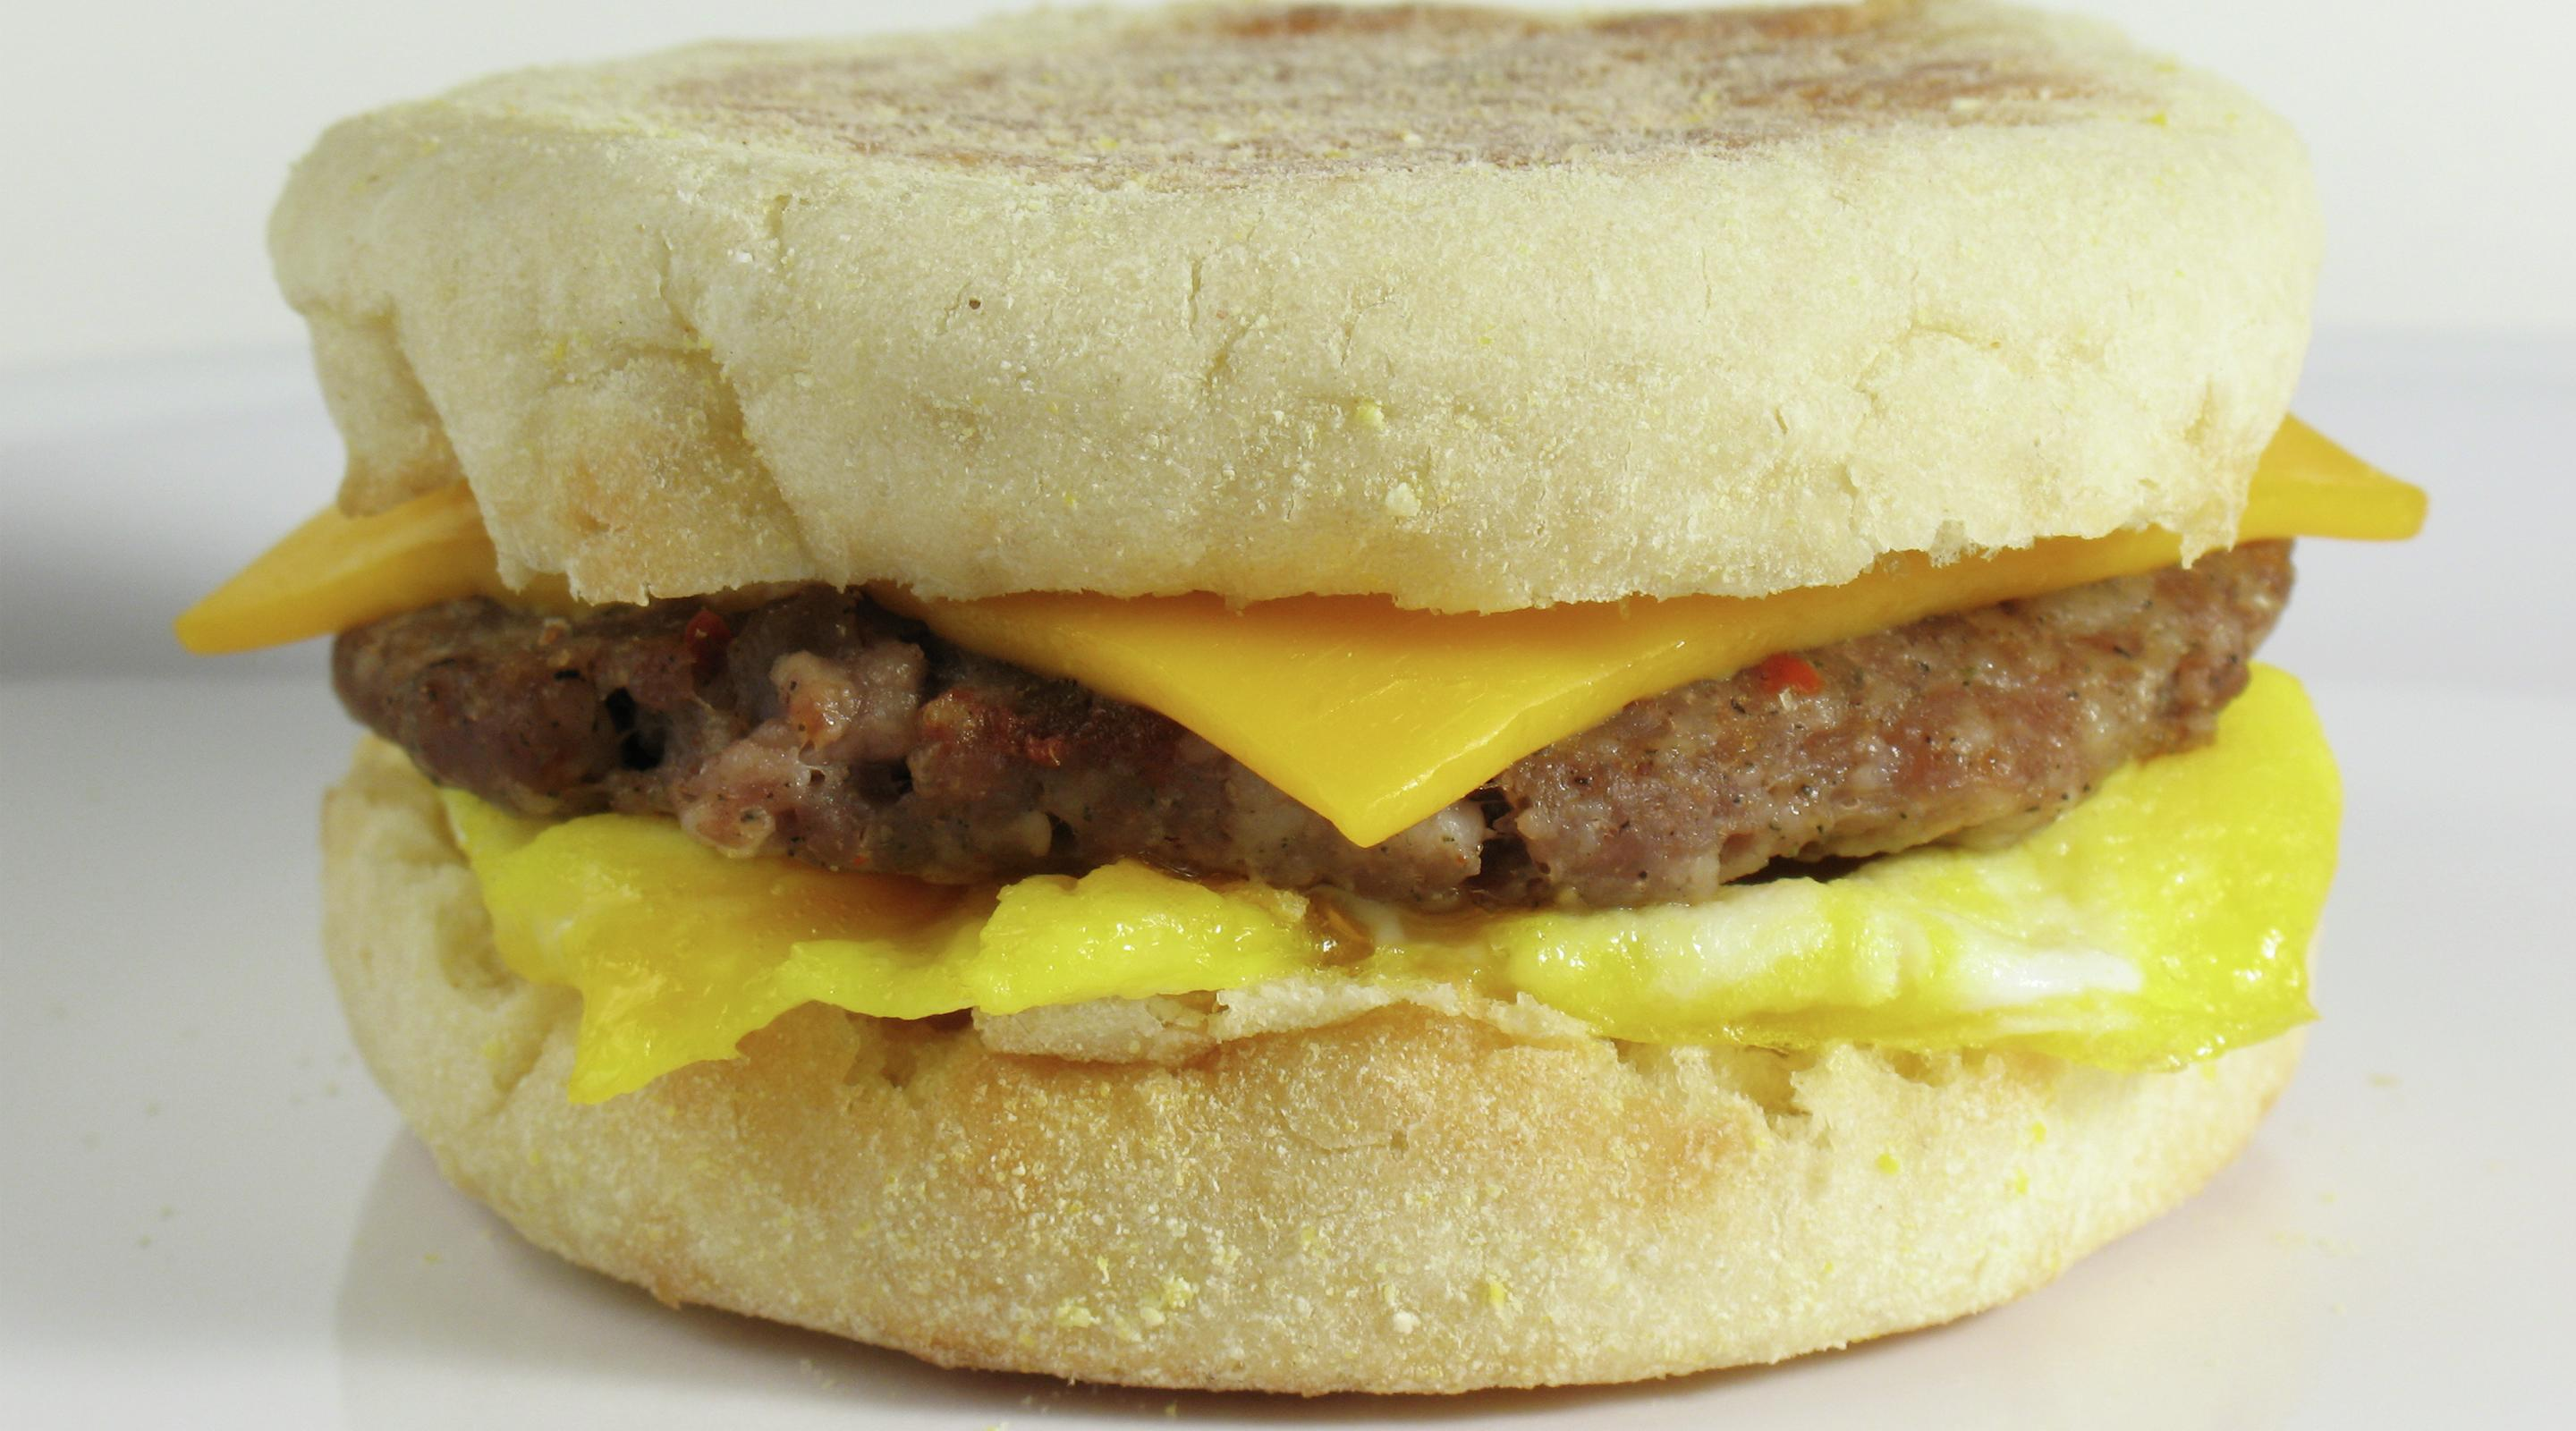 Savory Sausage, Egg and Cheese Muffin Sandwich.